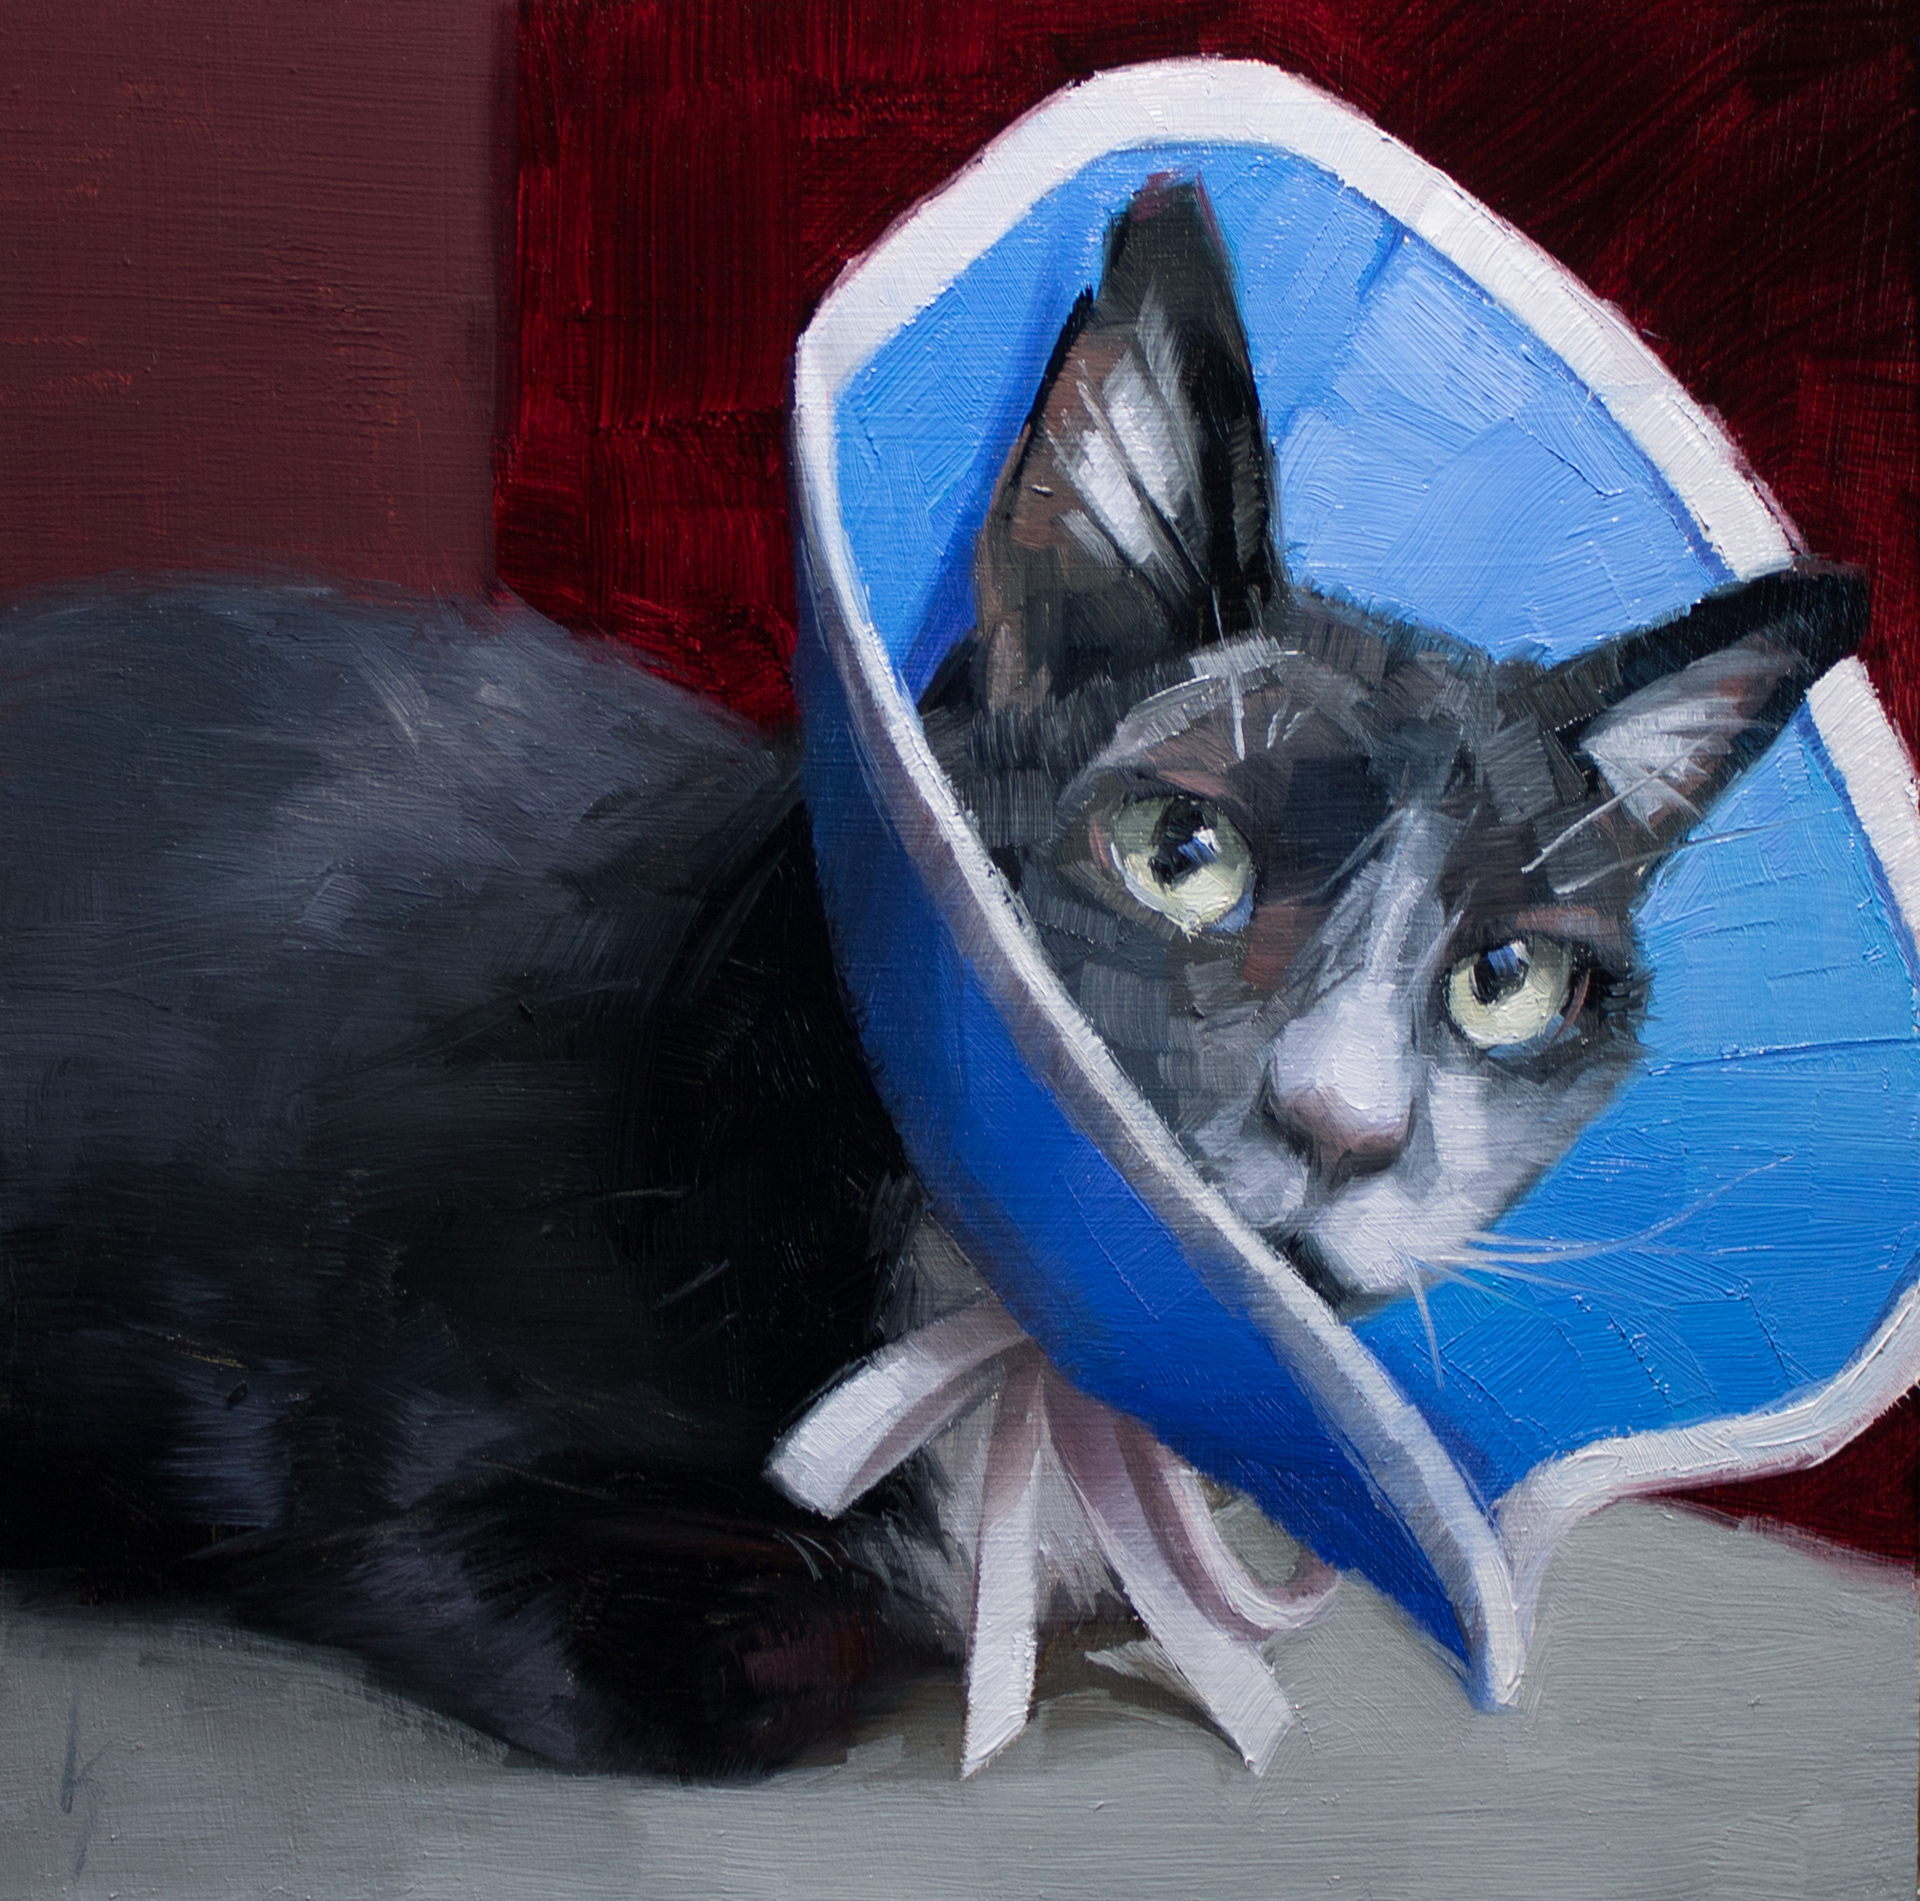 Cone of Shame by Kirsten Savage